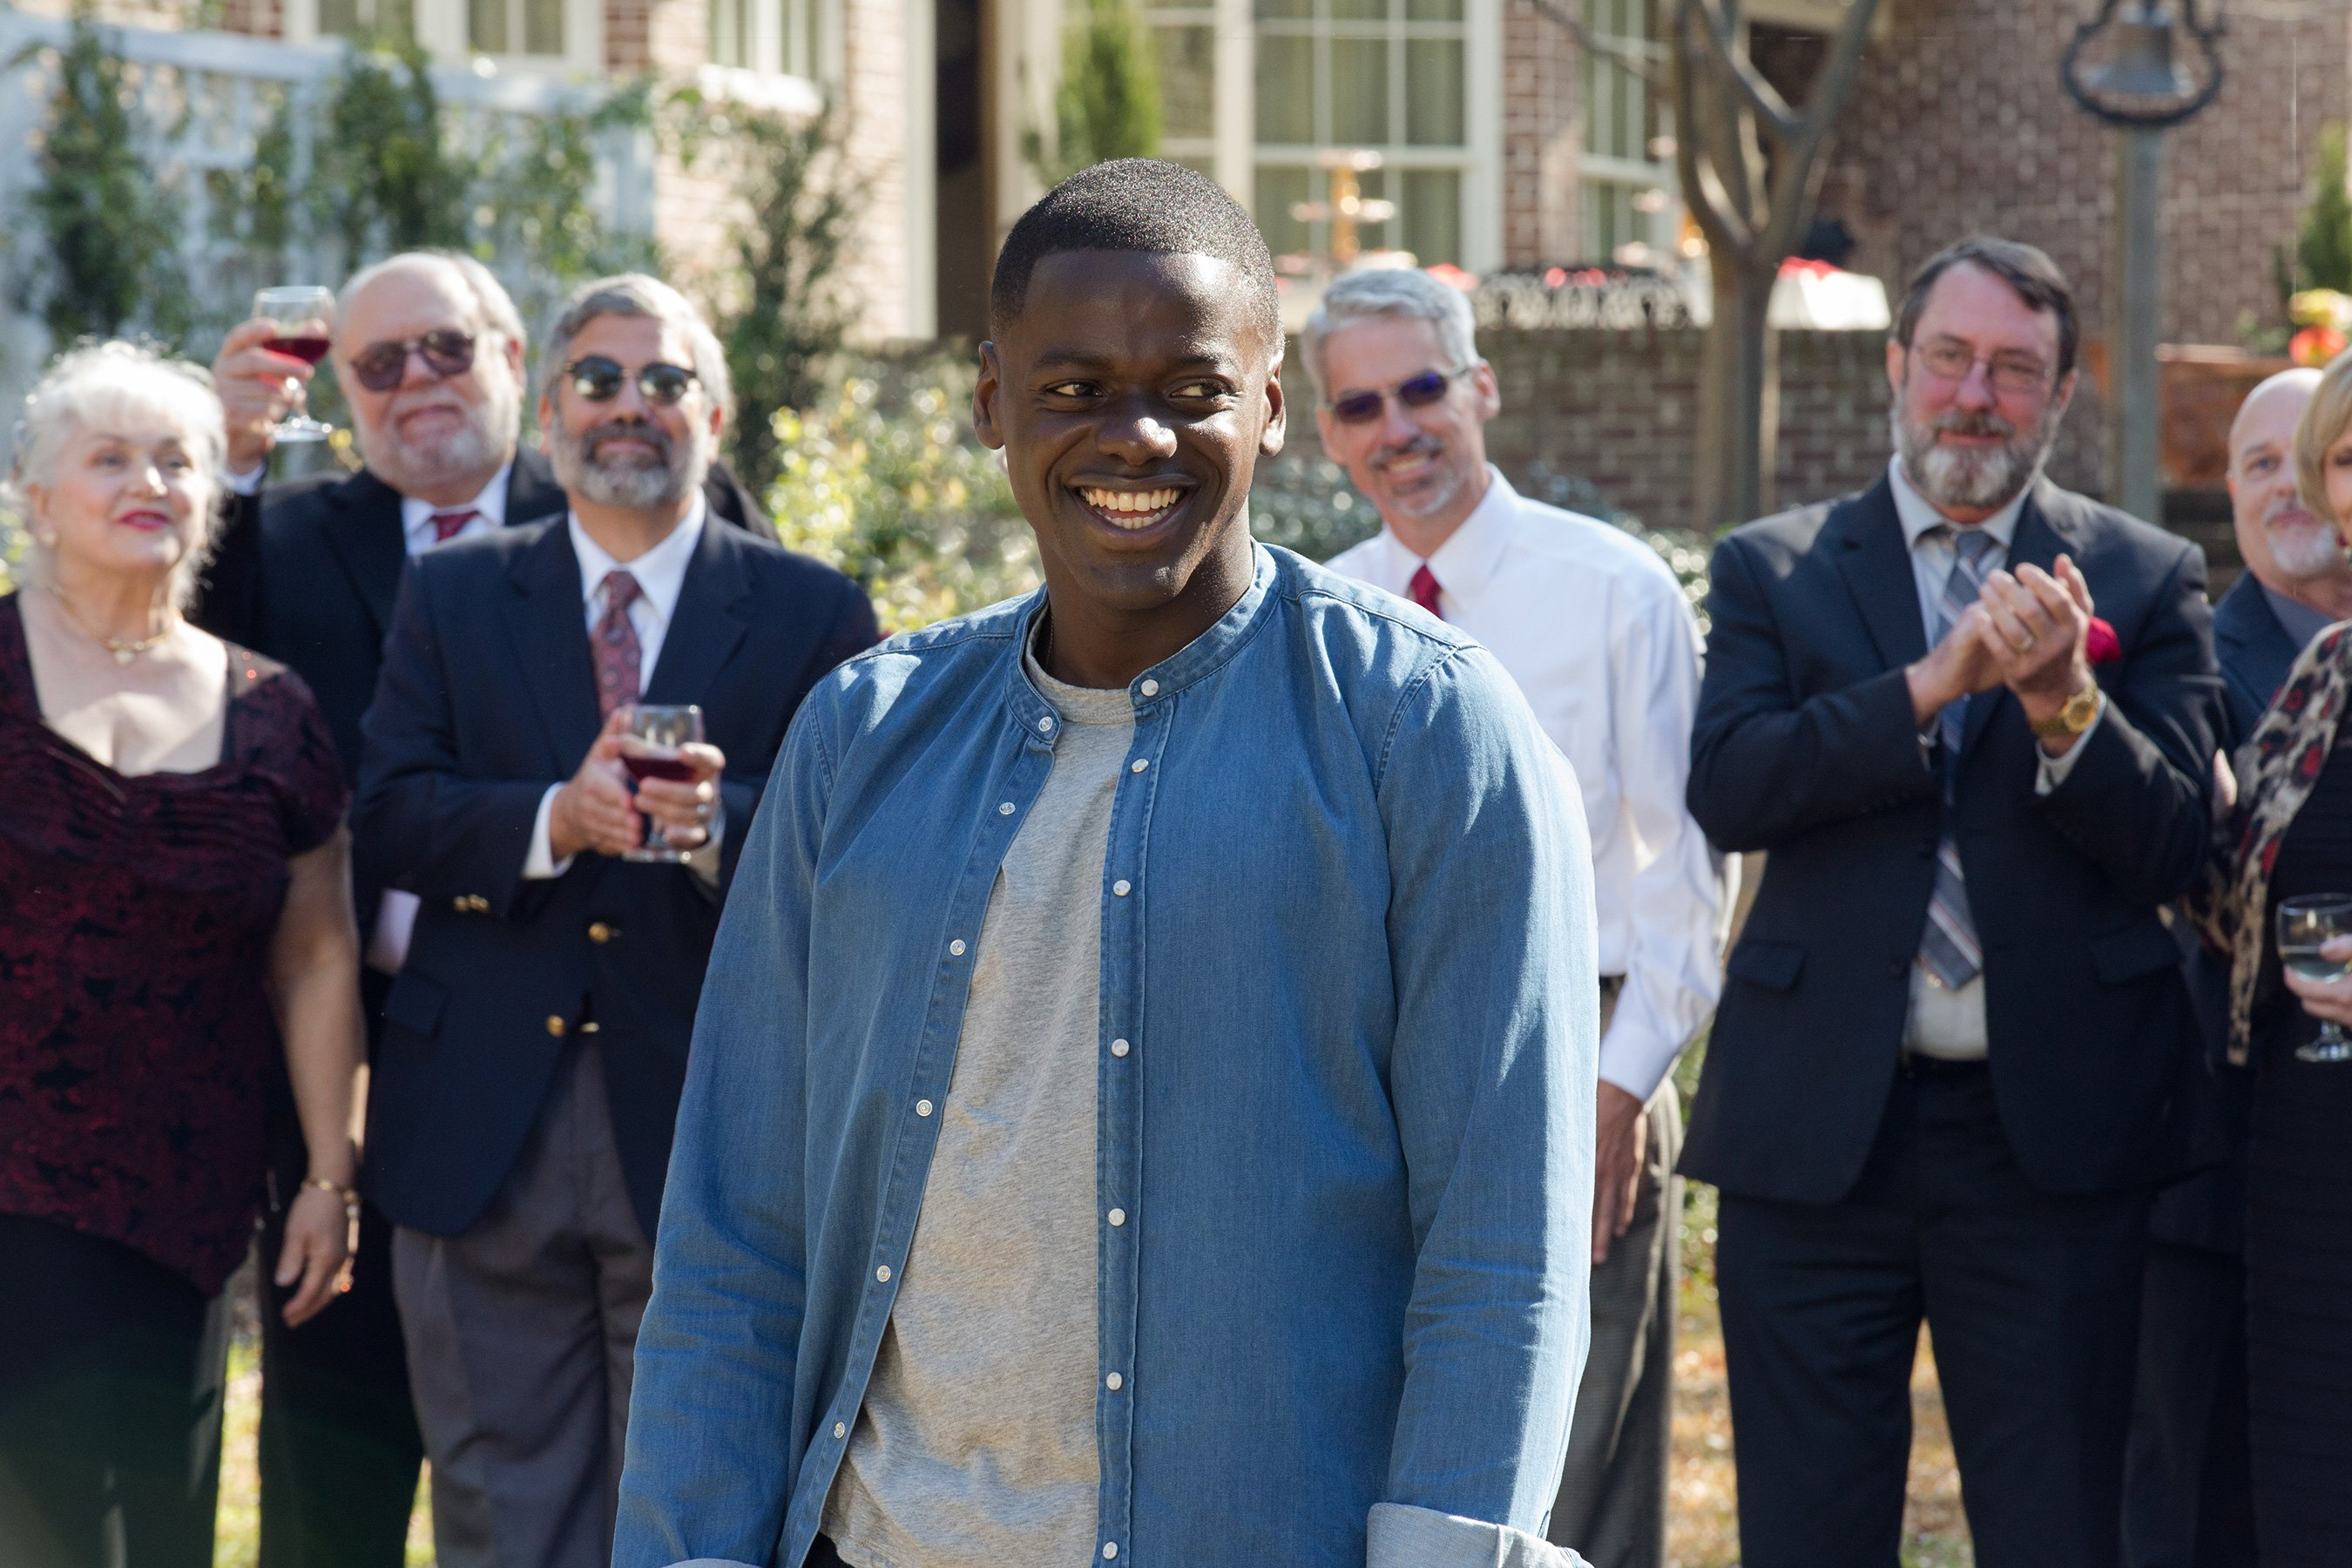 Get Out: How Daniel Kaluuya related to the racist party scene